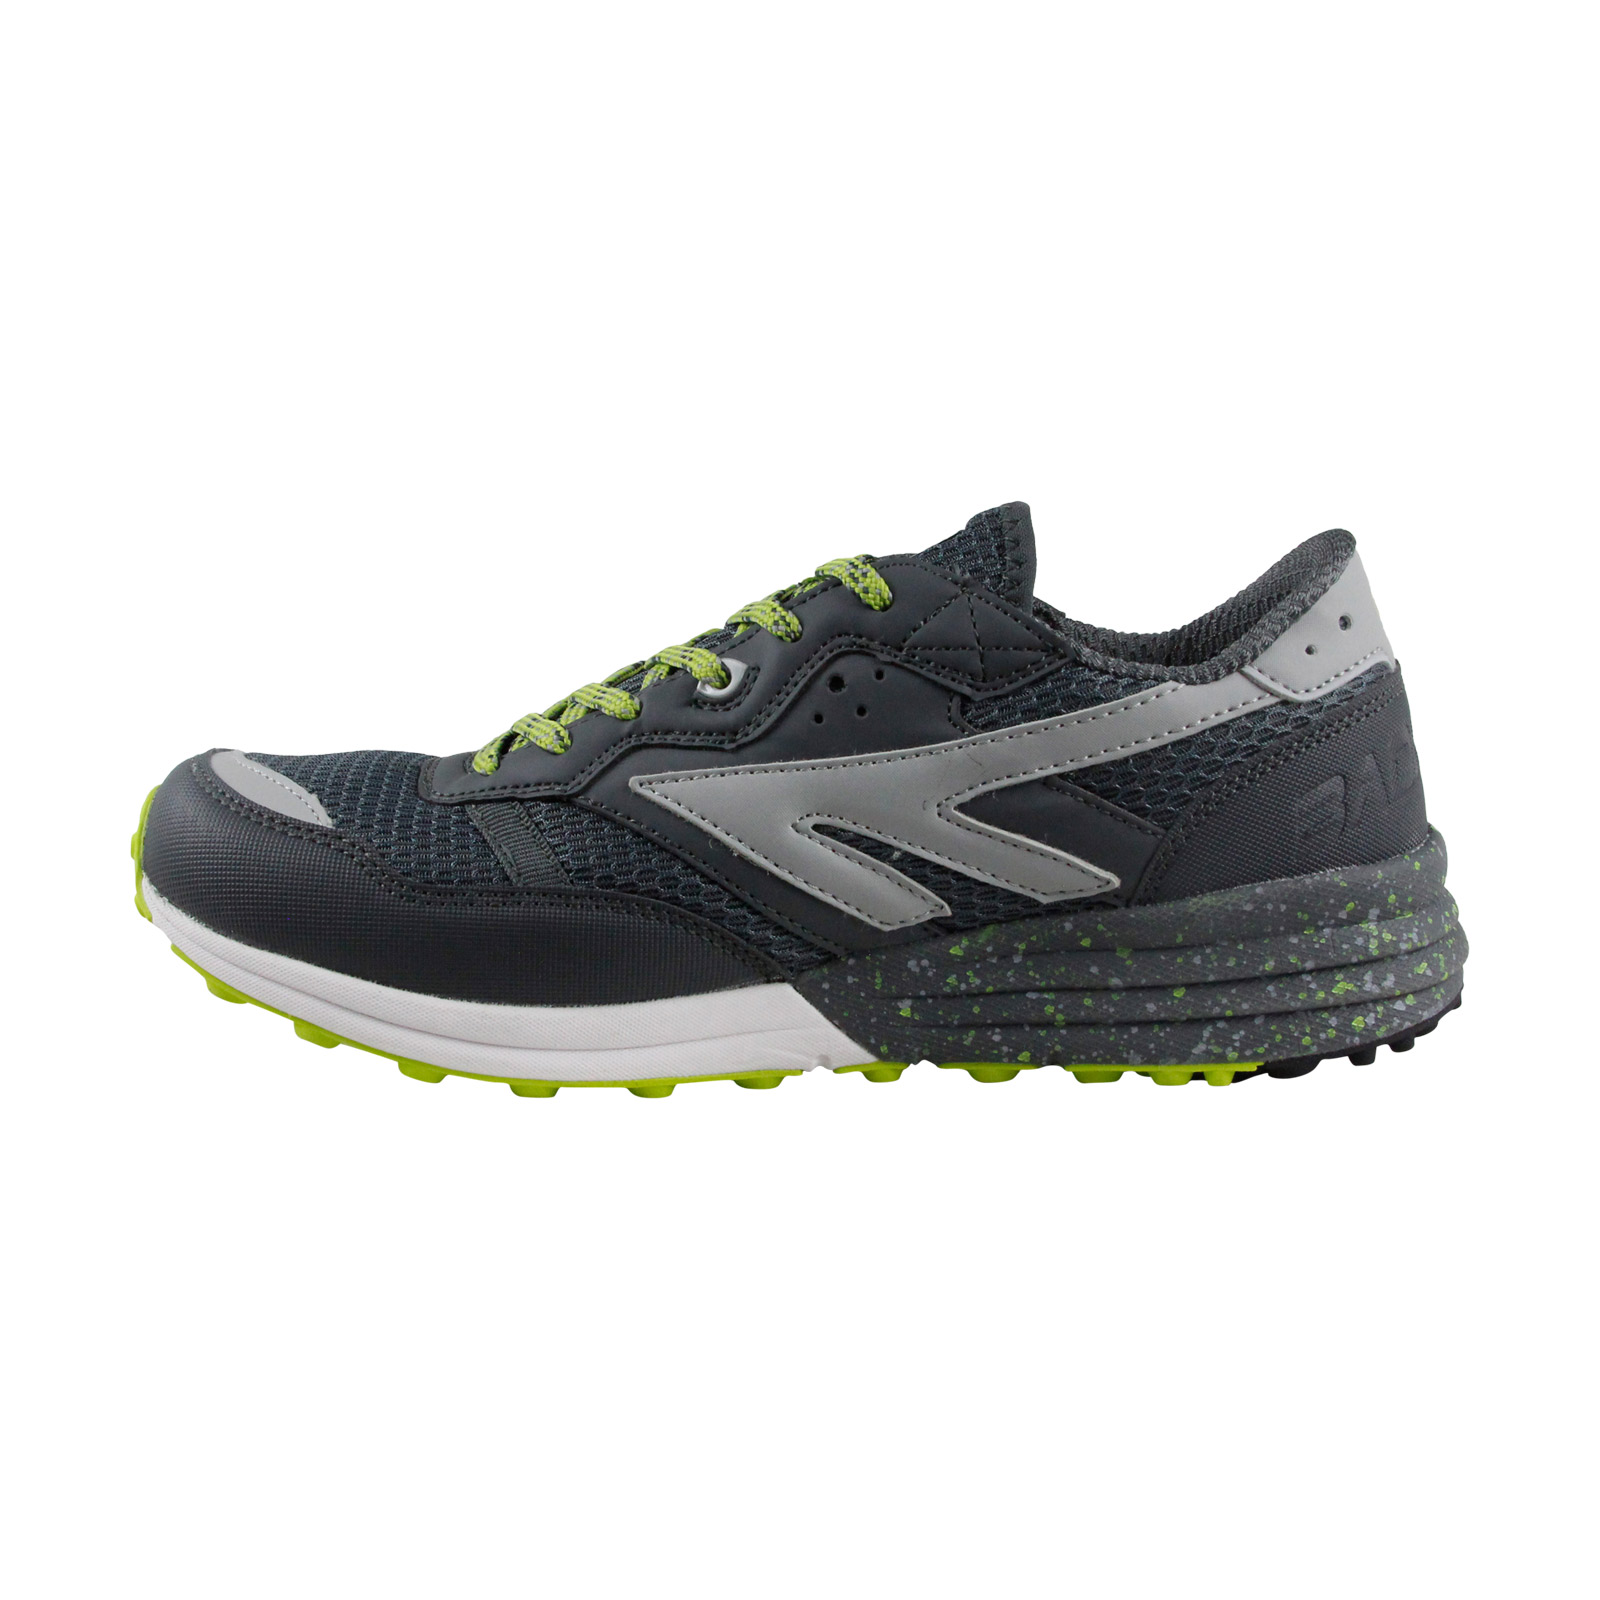 Hi-Tec Men's Badwater Citadel / Limoncello Silver Ankle-High Trail Runner -  8M - Walmart.com